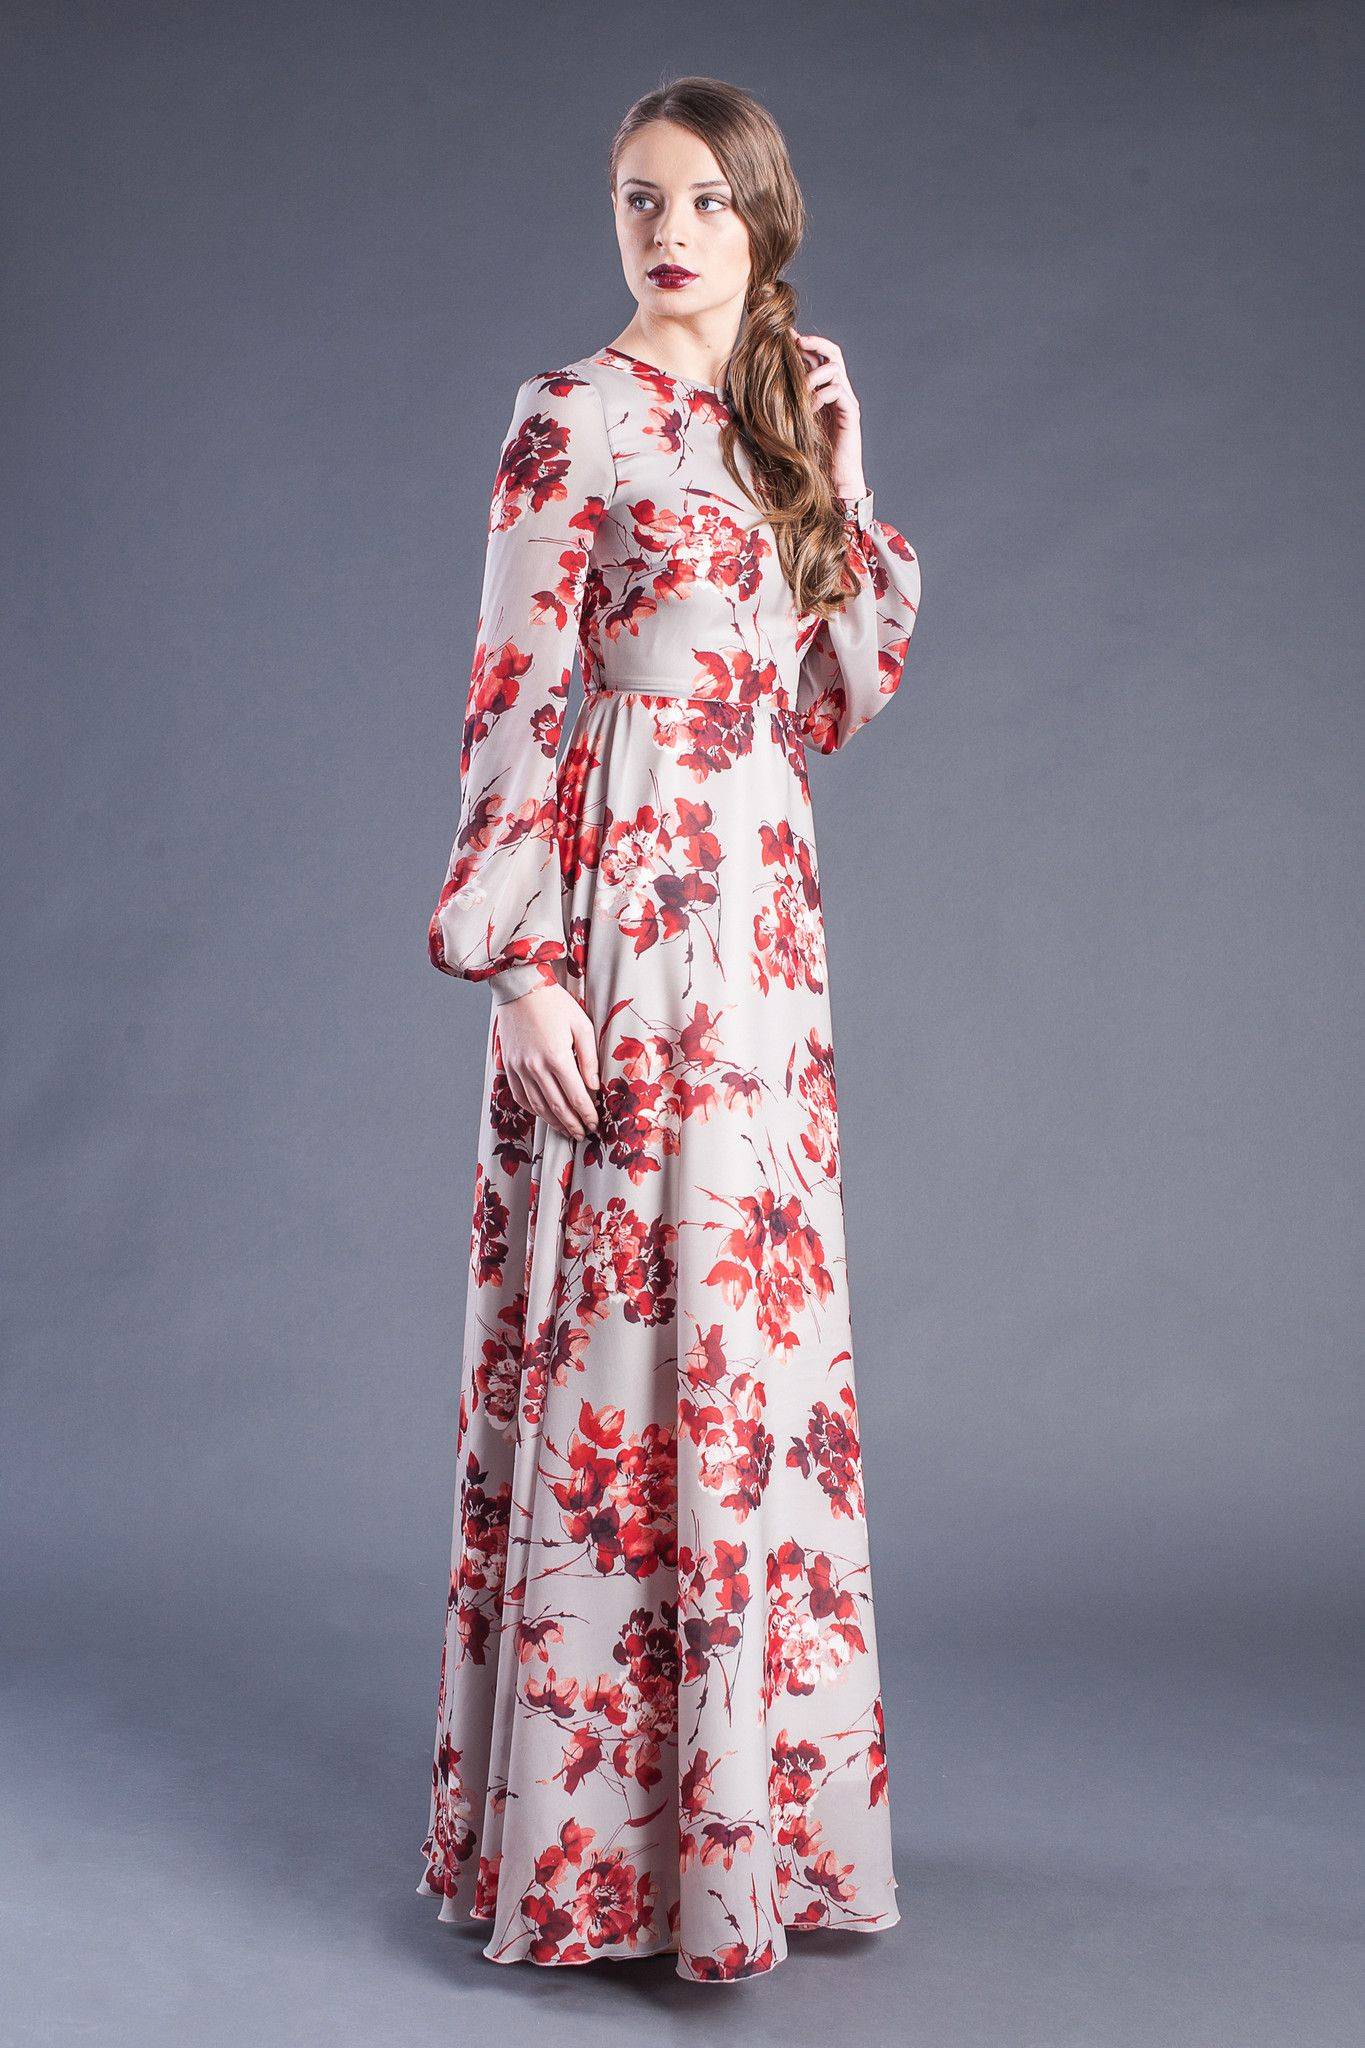 Long Sleeve Full Floral Maxi Dress | Floral maxi dress, Floral ...